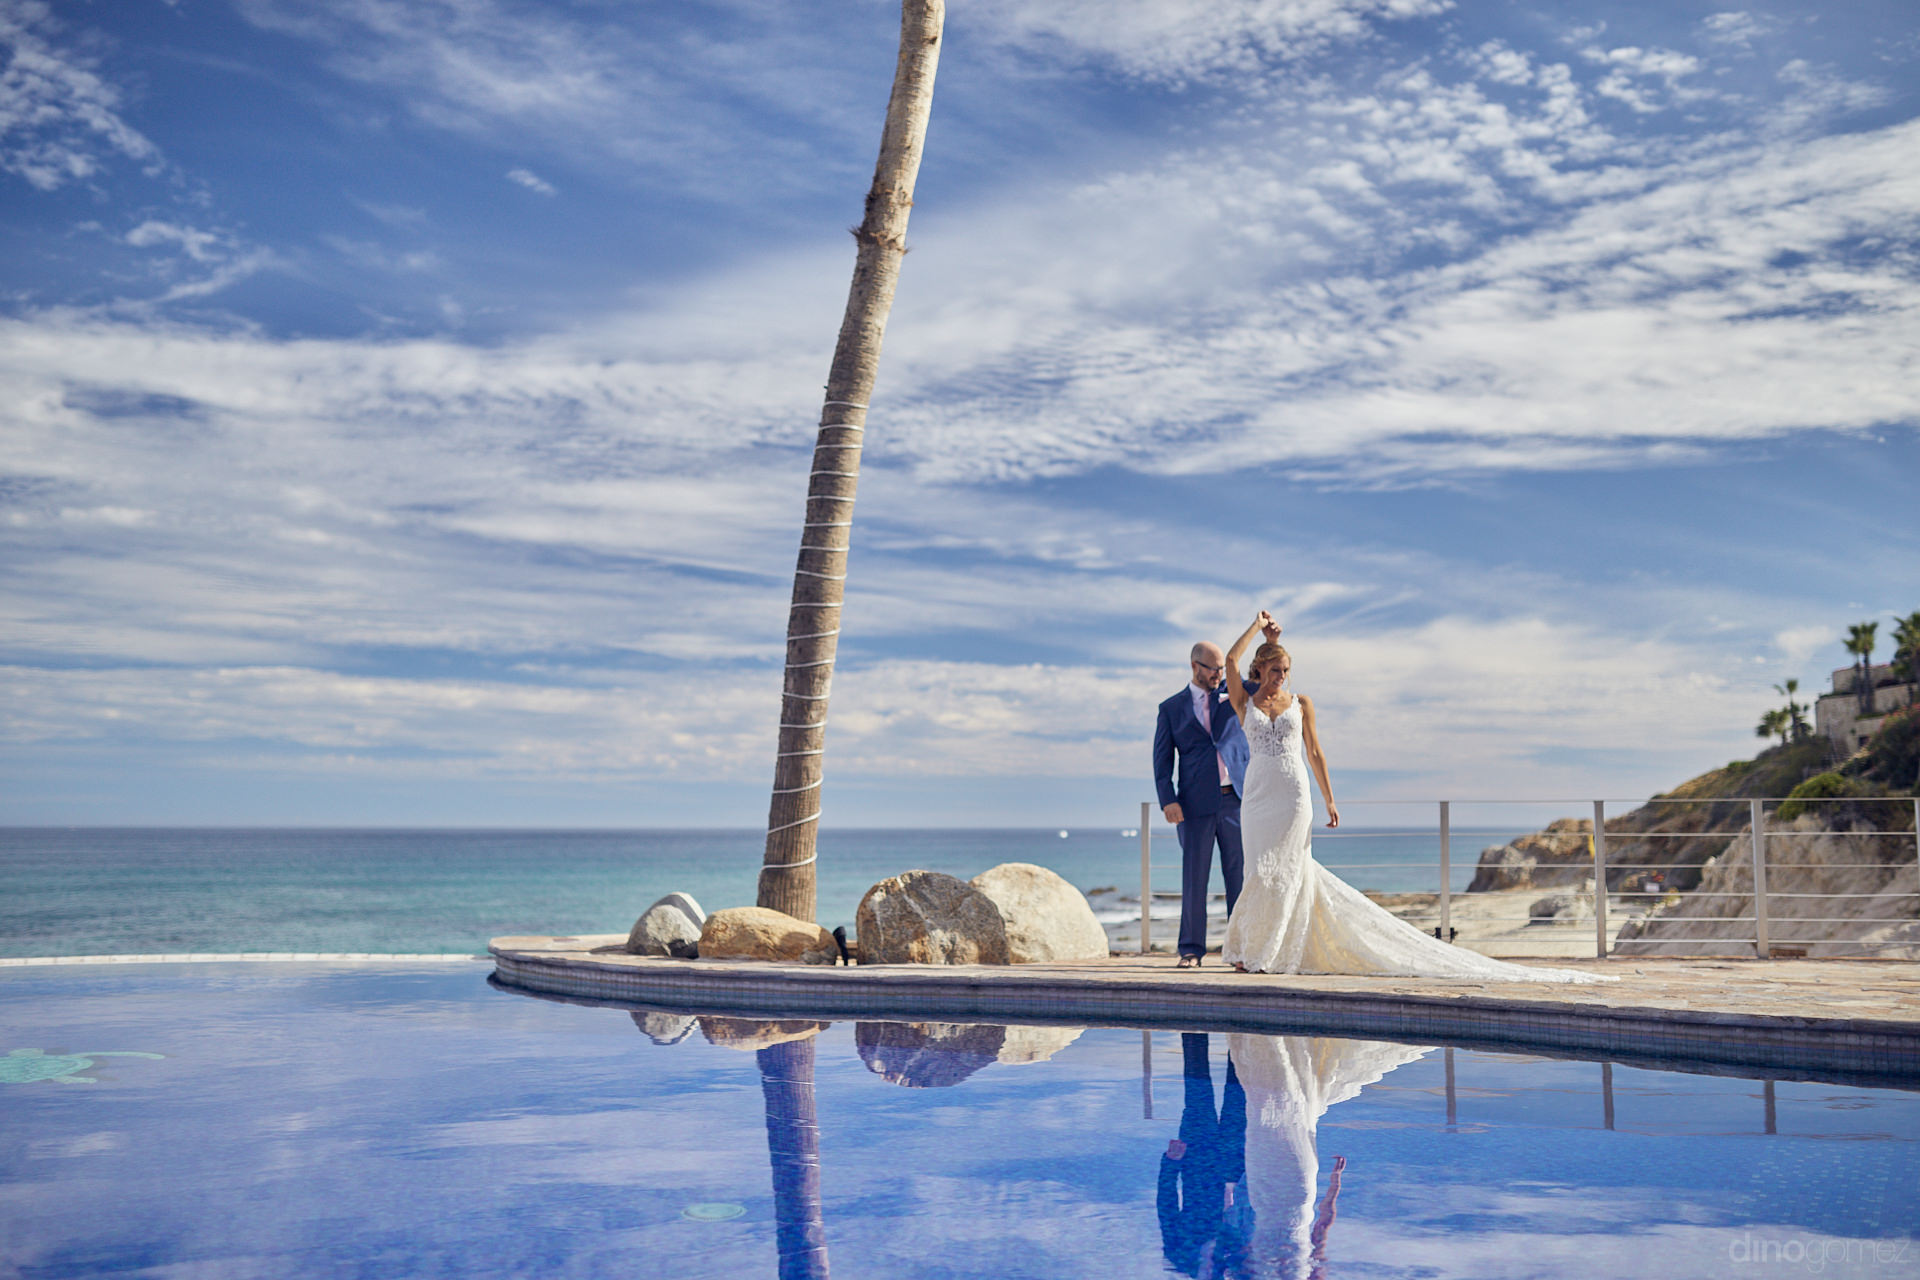 cabo wedding venues unlike this one - MM